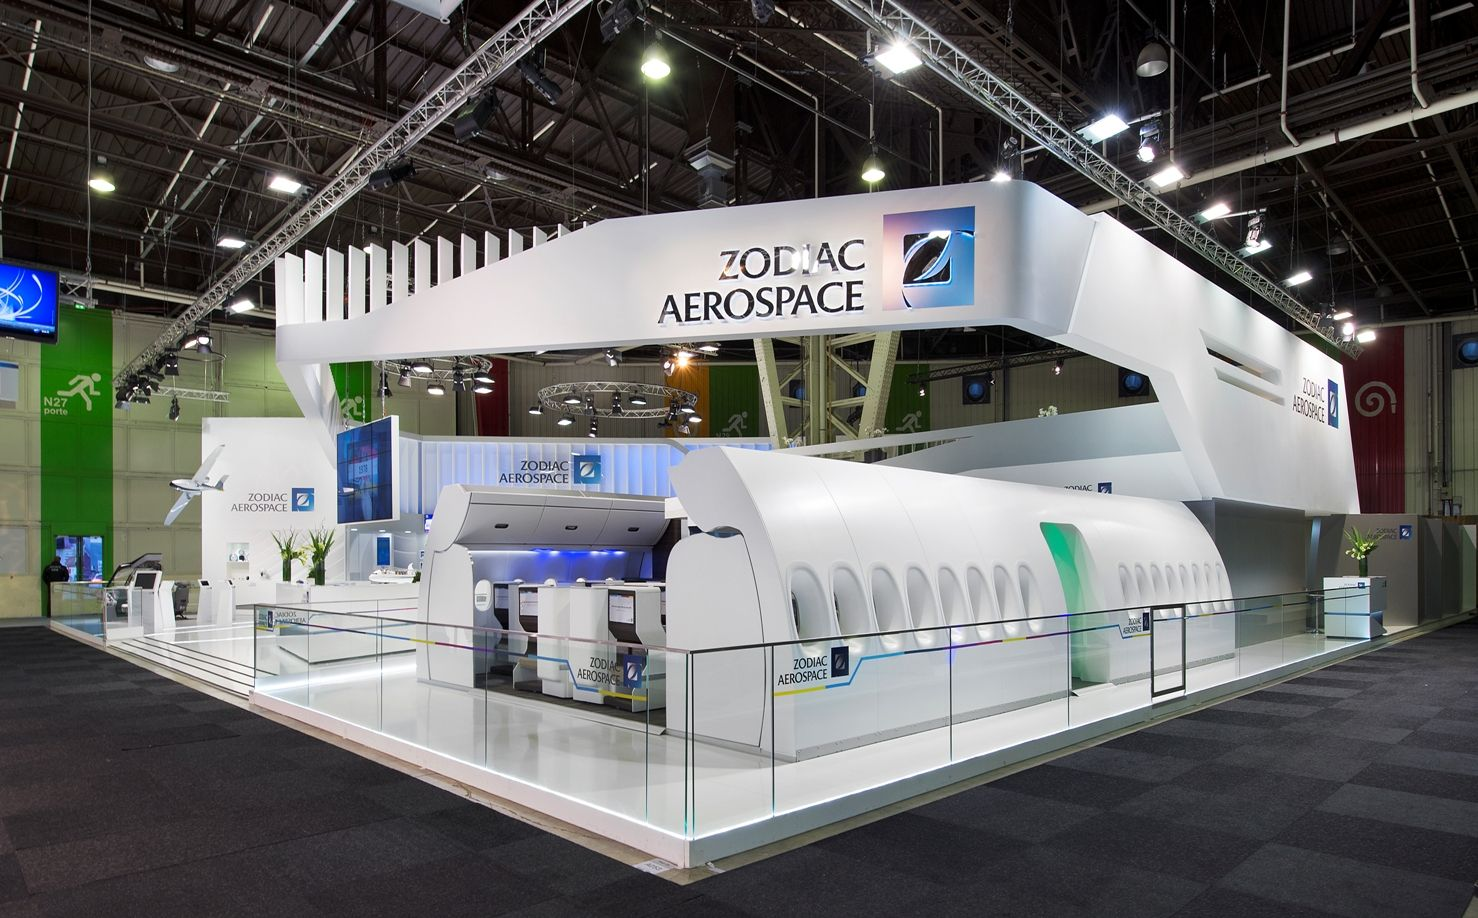 Pin by jn on exhibition exhibition booth pavilion design - Salon du bourget 2015 tarif ...